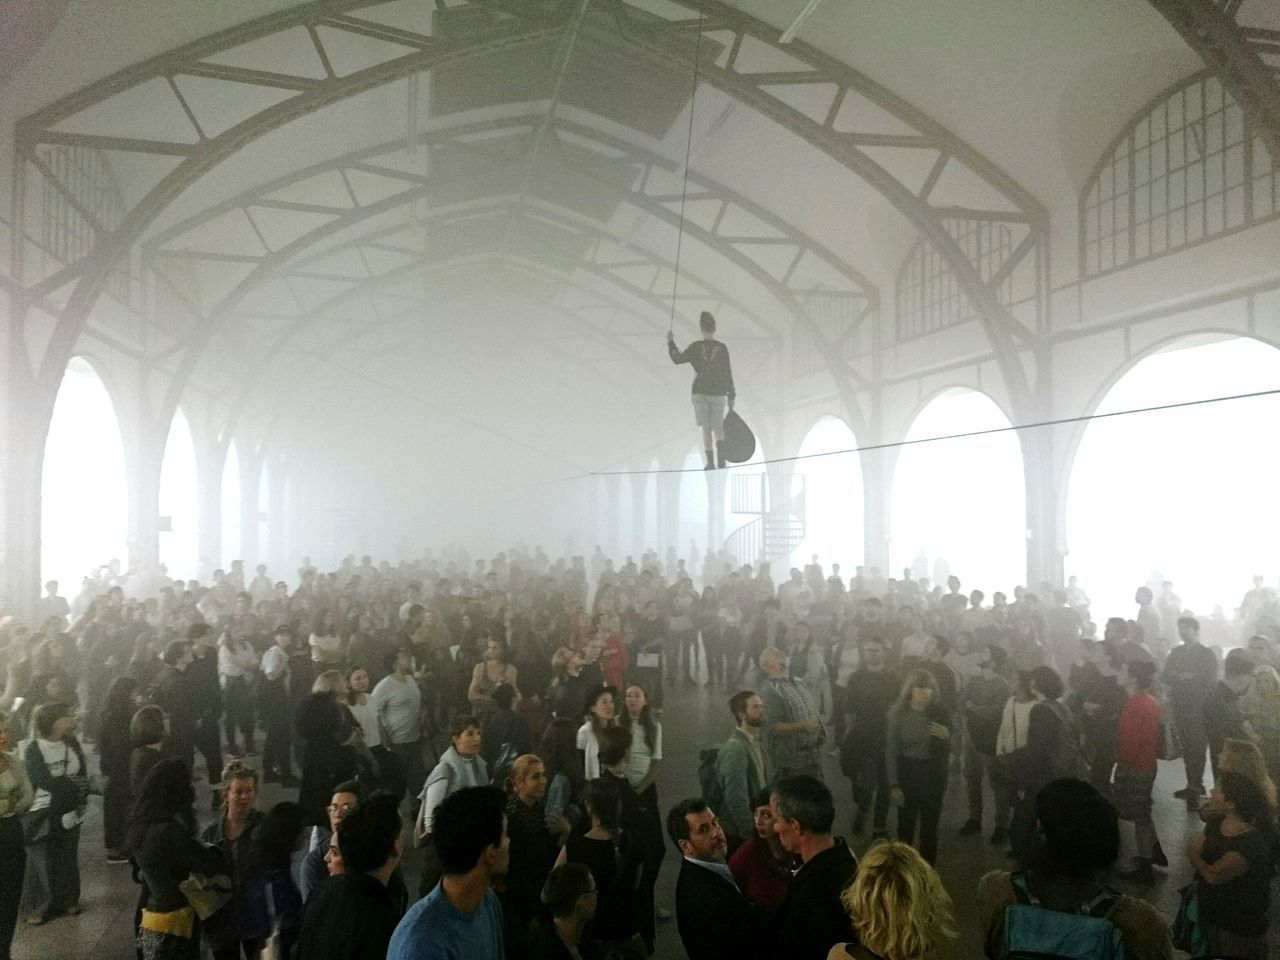 Art Performance Indoors  Large Group Of People Architecture Built Structure Crowd Person Architectural Column Day